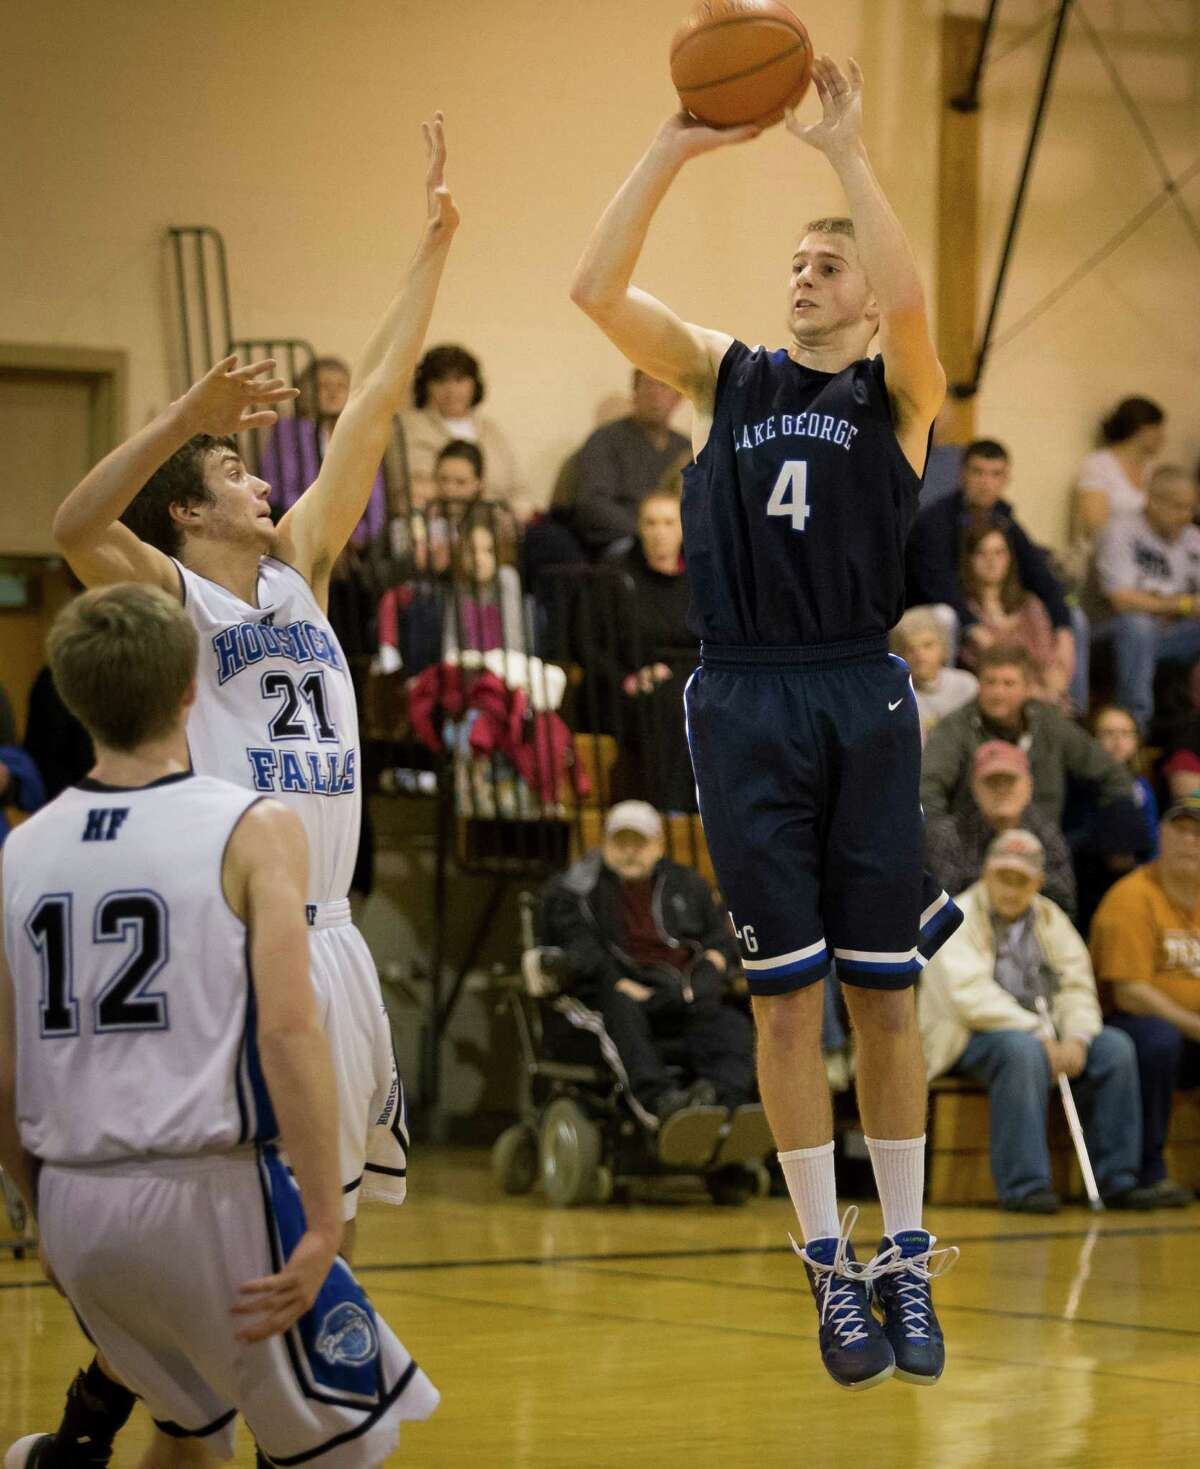 Lake George's #4 Joel Wincowski takes a jump shot over Hoosick Fall's #21 Levi Brewster during the boys' basketball game at Hoosick Falls High School, Saturday, Jan. 18, 2013 in Hoosick Falls, N.Y. (Dan Little / Special to the Times Union)